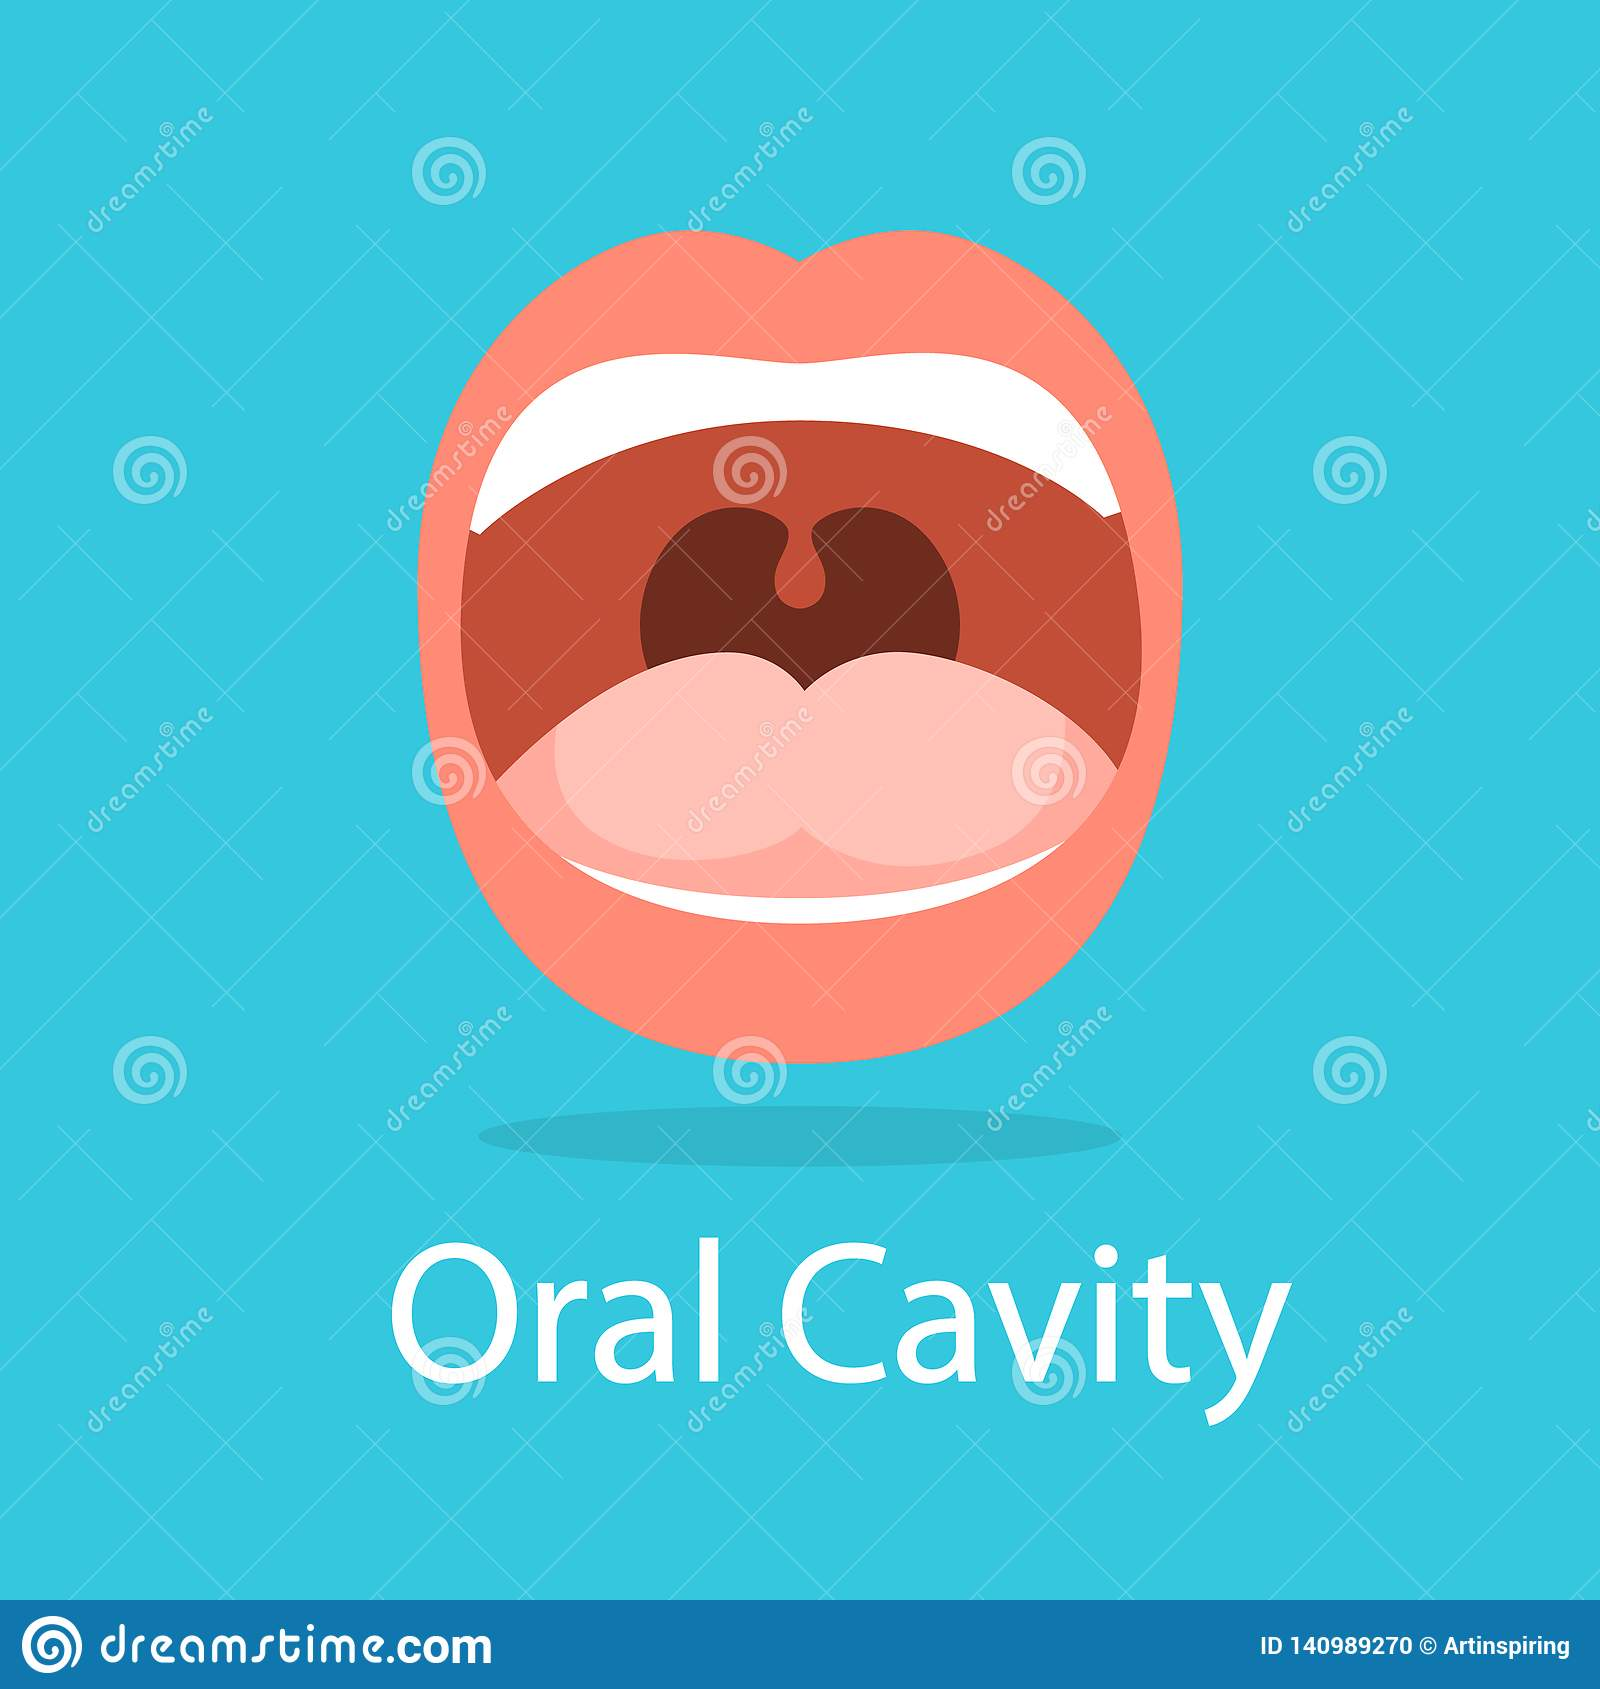 Human Oral Cavity  Opened Mouth  Idea Of Dental Stock Vector